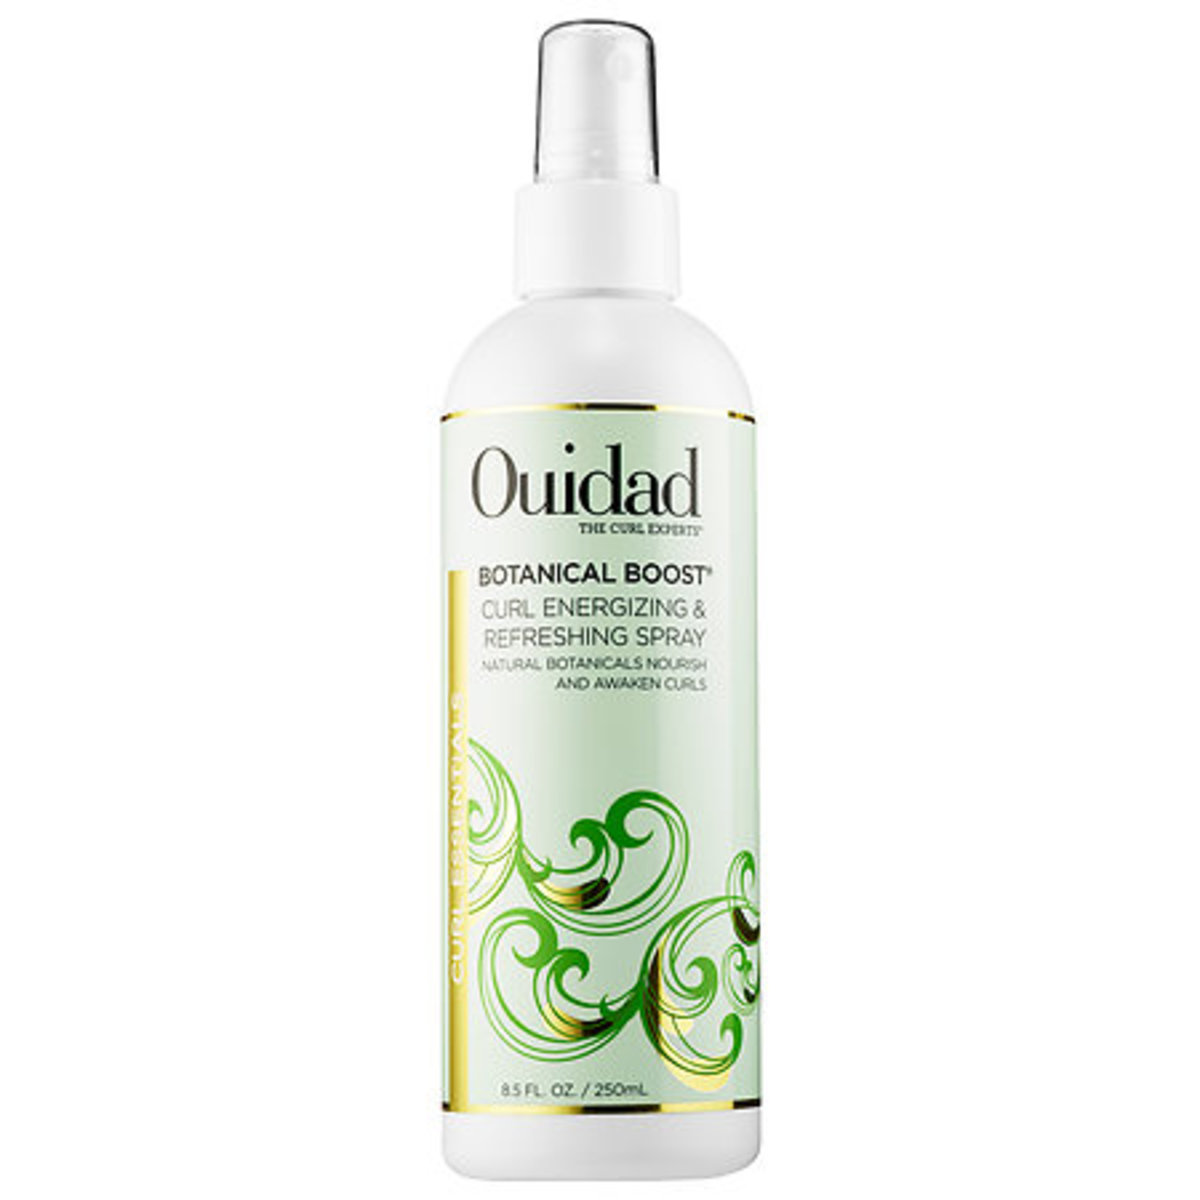 Ouidad Botanical Boost Curl Energizing & Refreshing Spray, $20, available at Ulta.